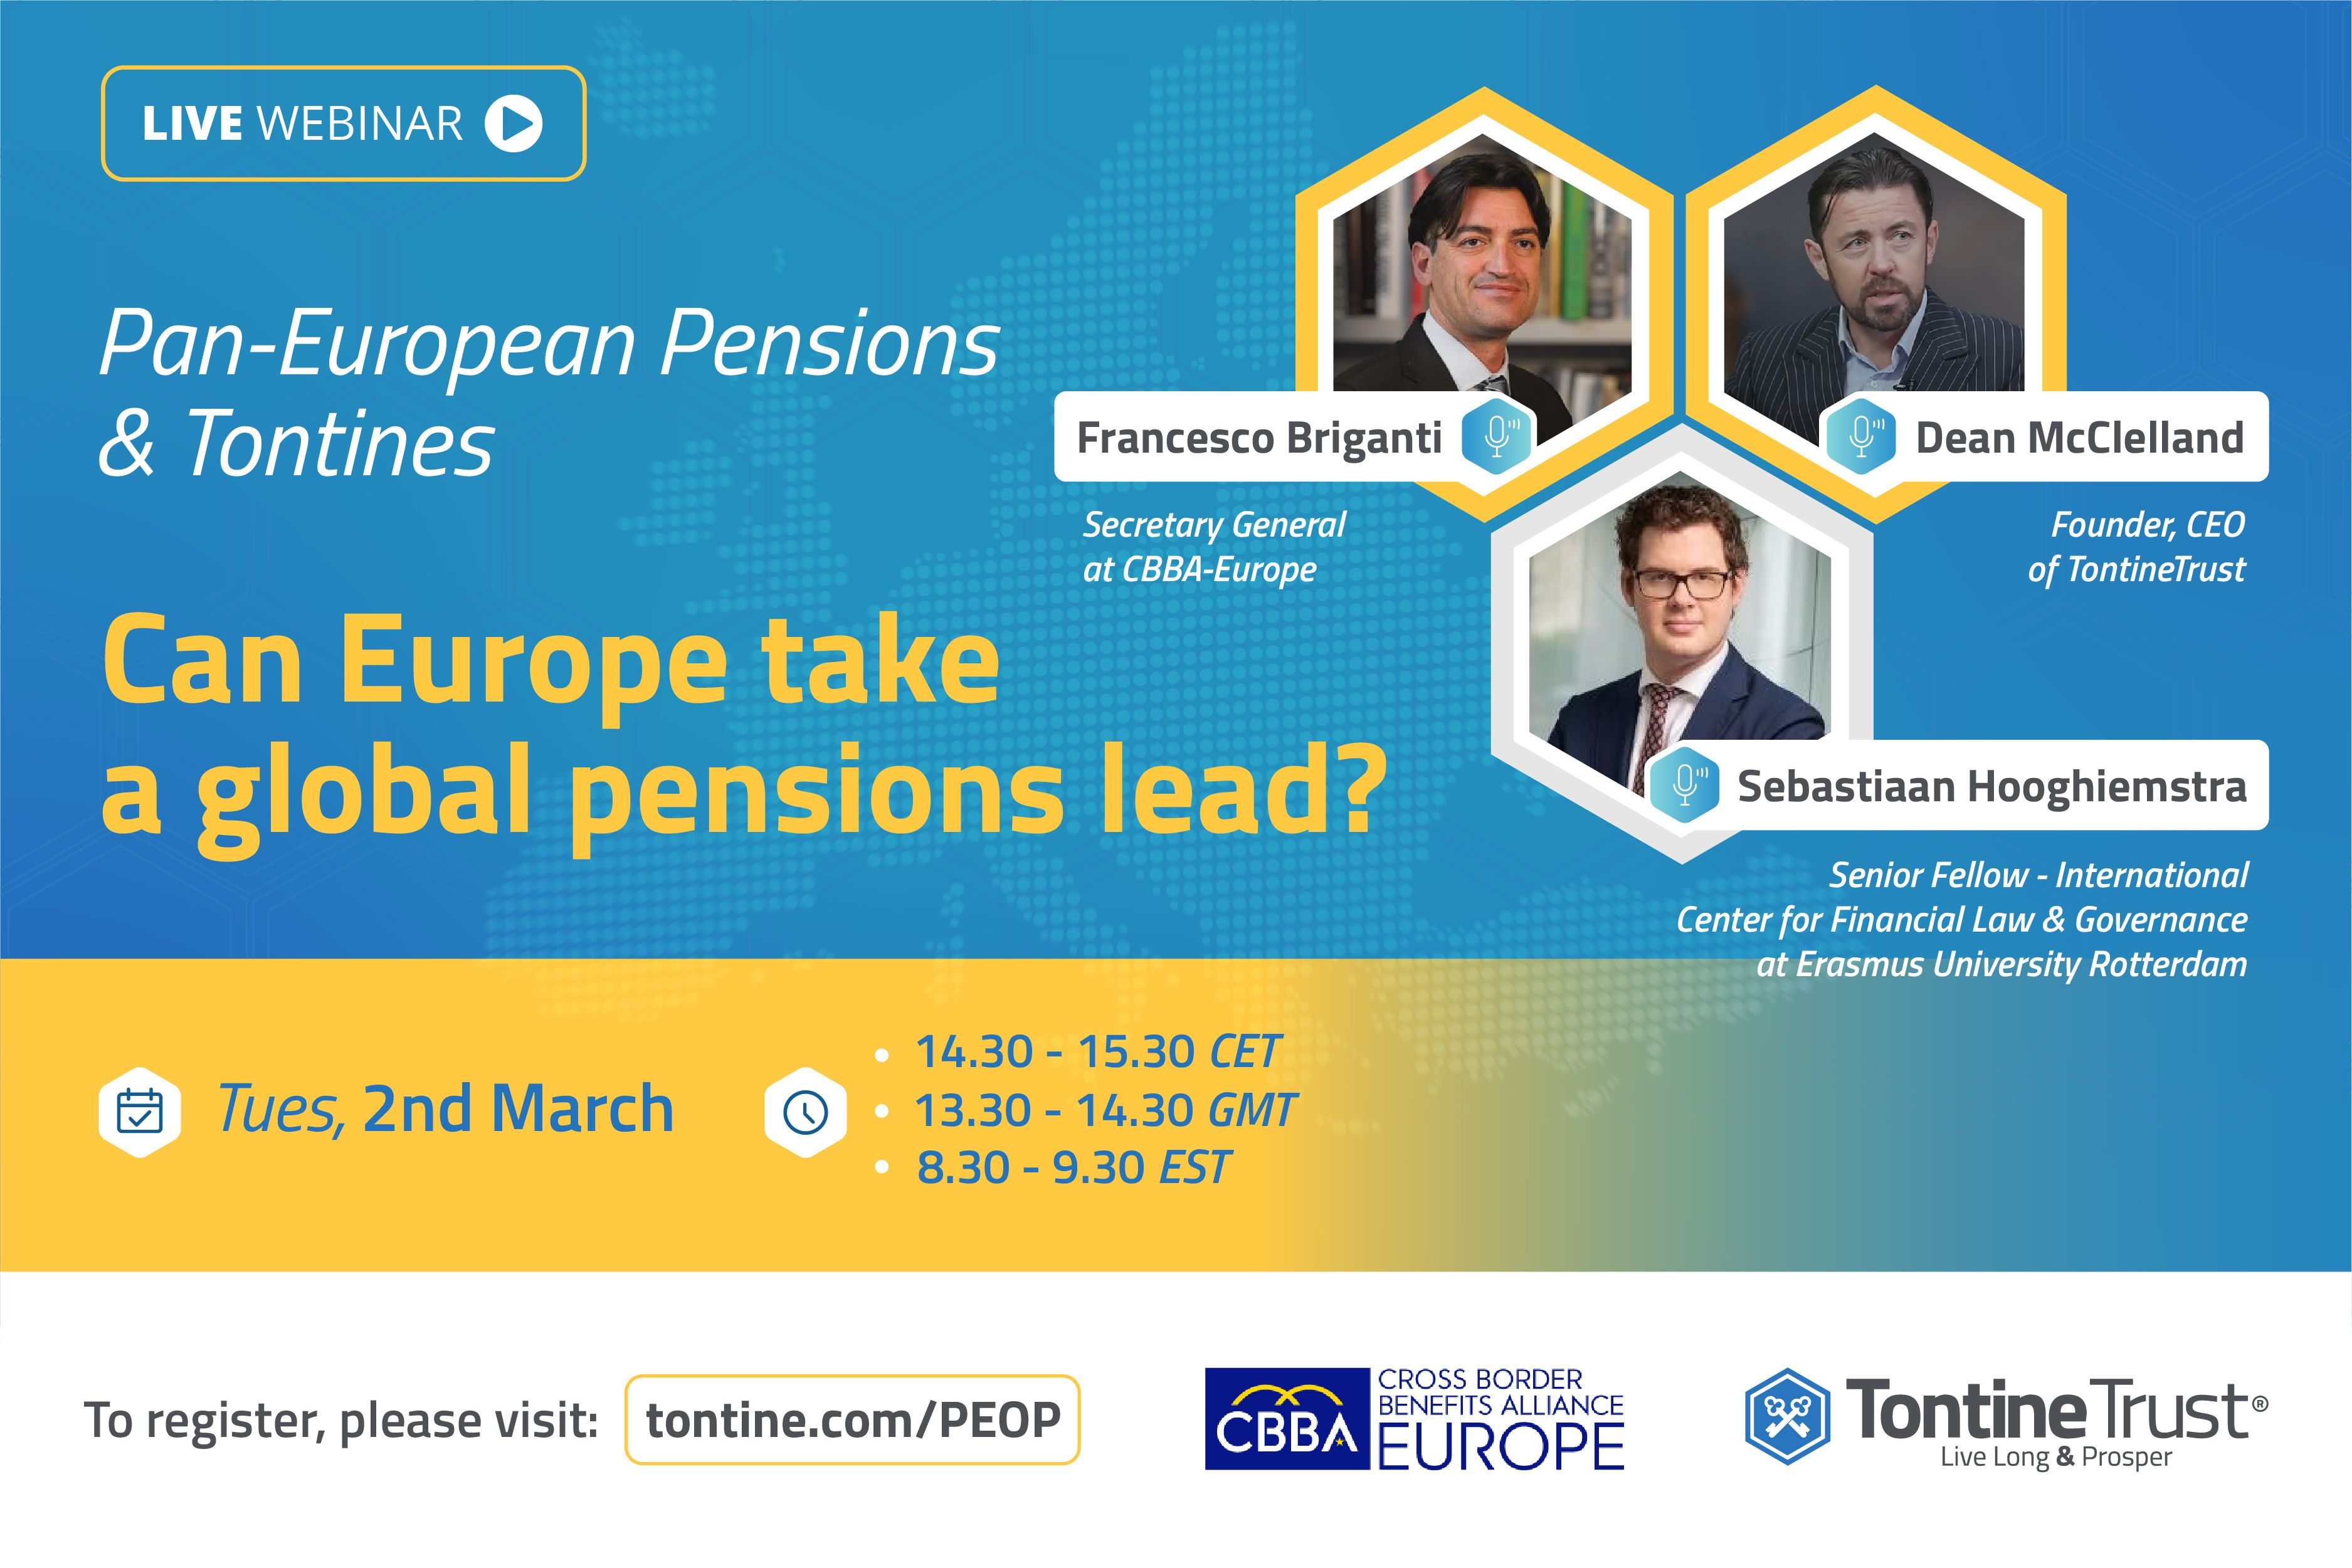 Pan-European Pensions & Tontines: Can Europe take a global pensions lead?